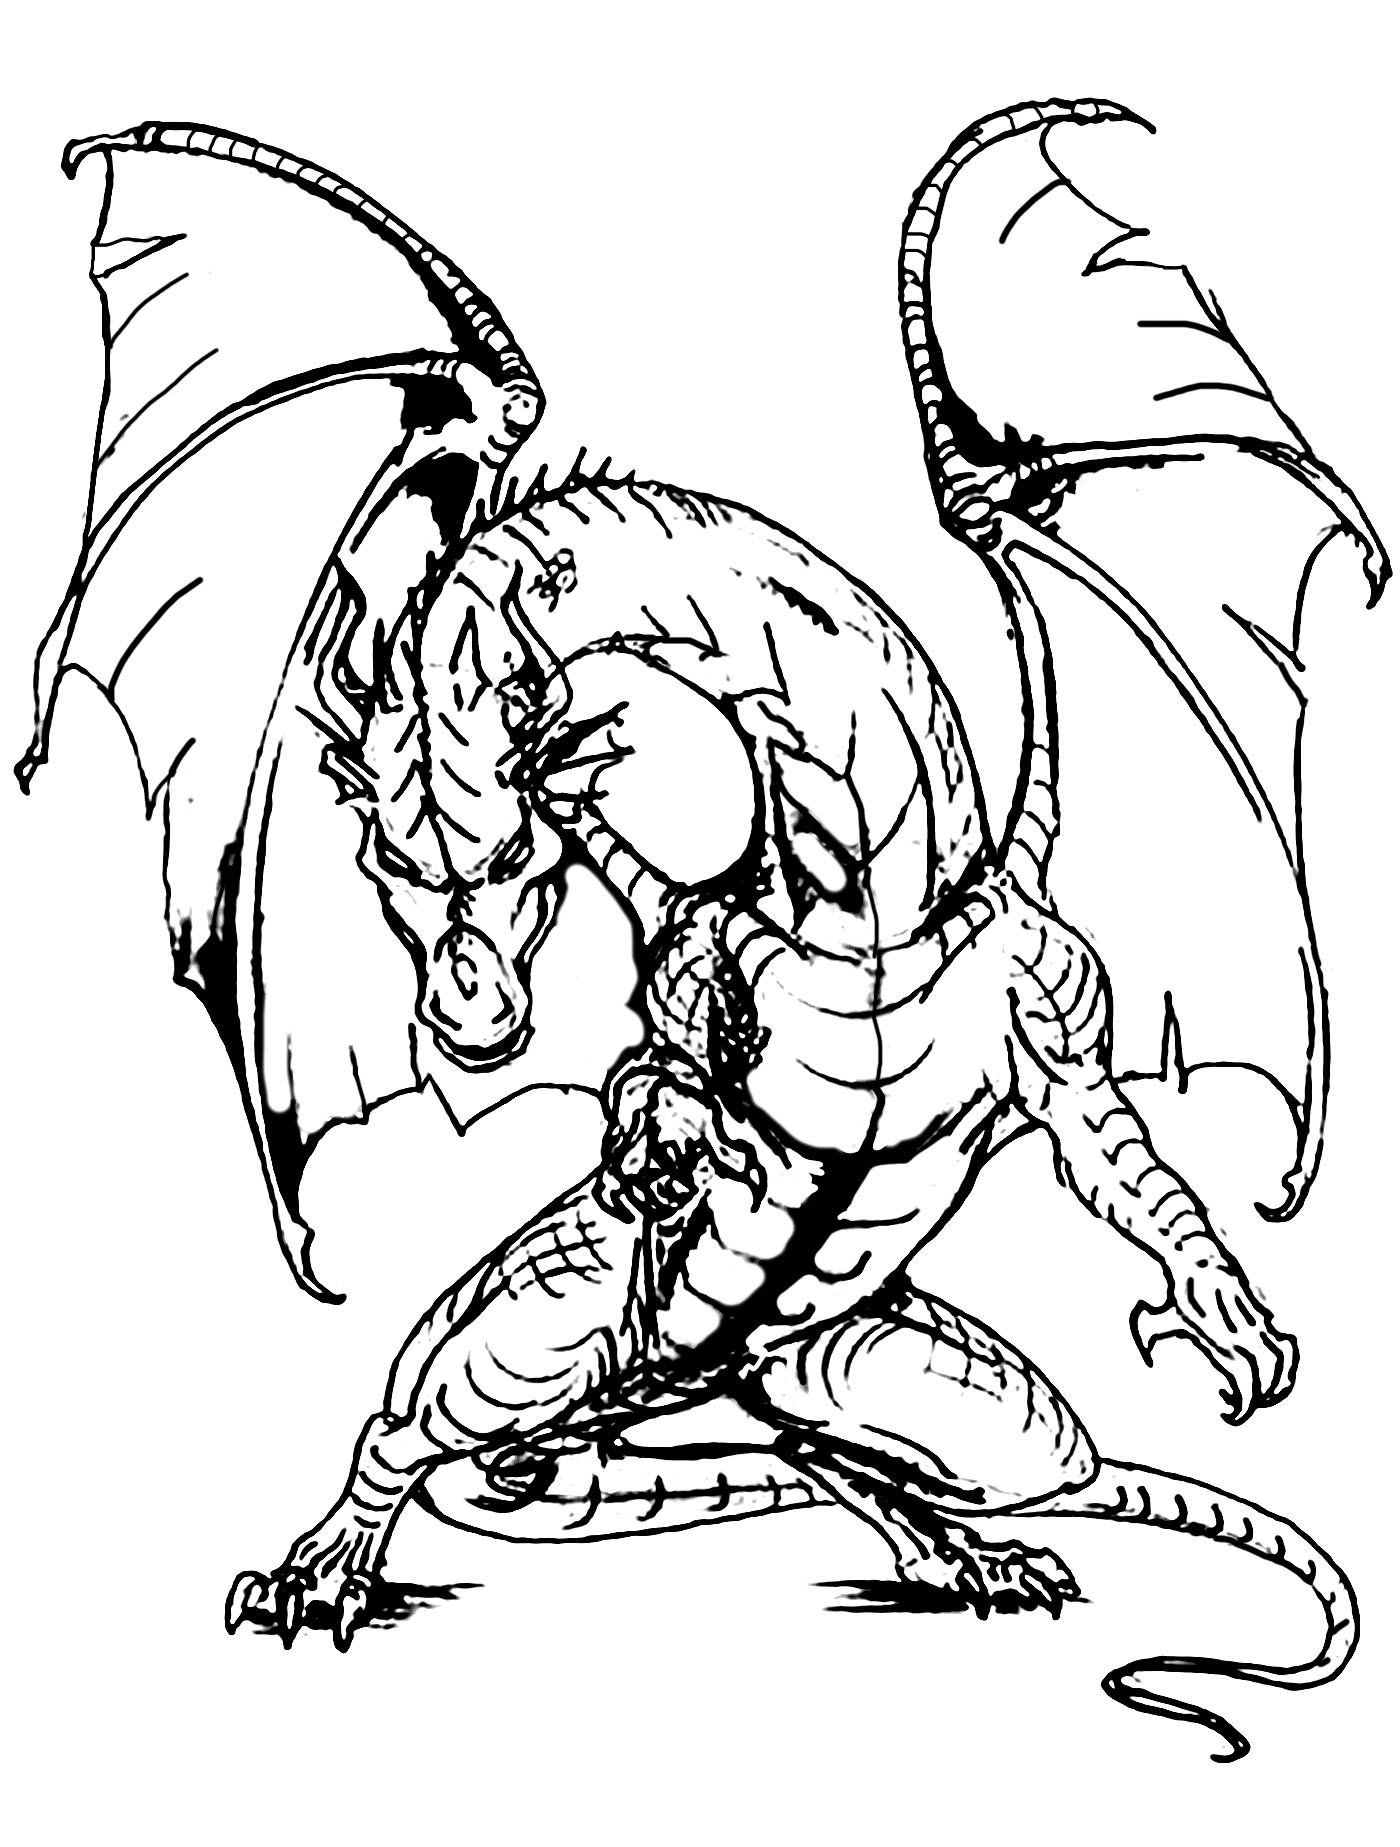 dragon coloring pages free chinese dragon coloring pages to download and print for free pages dragon free coloring